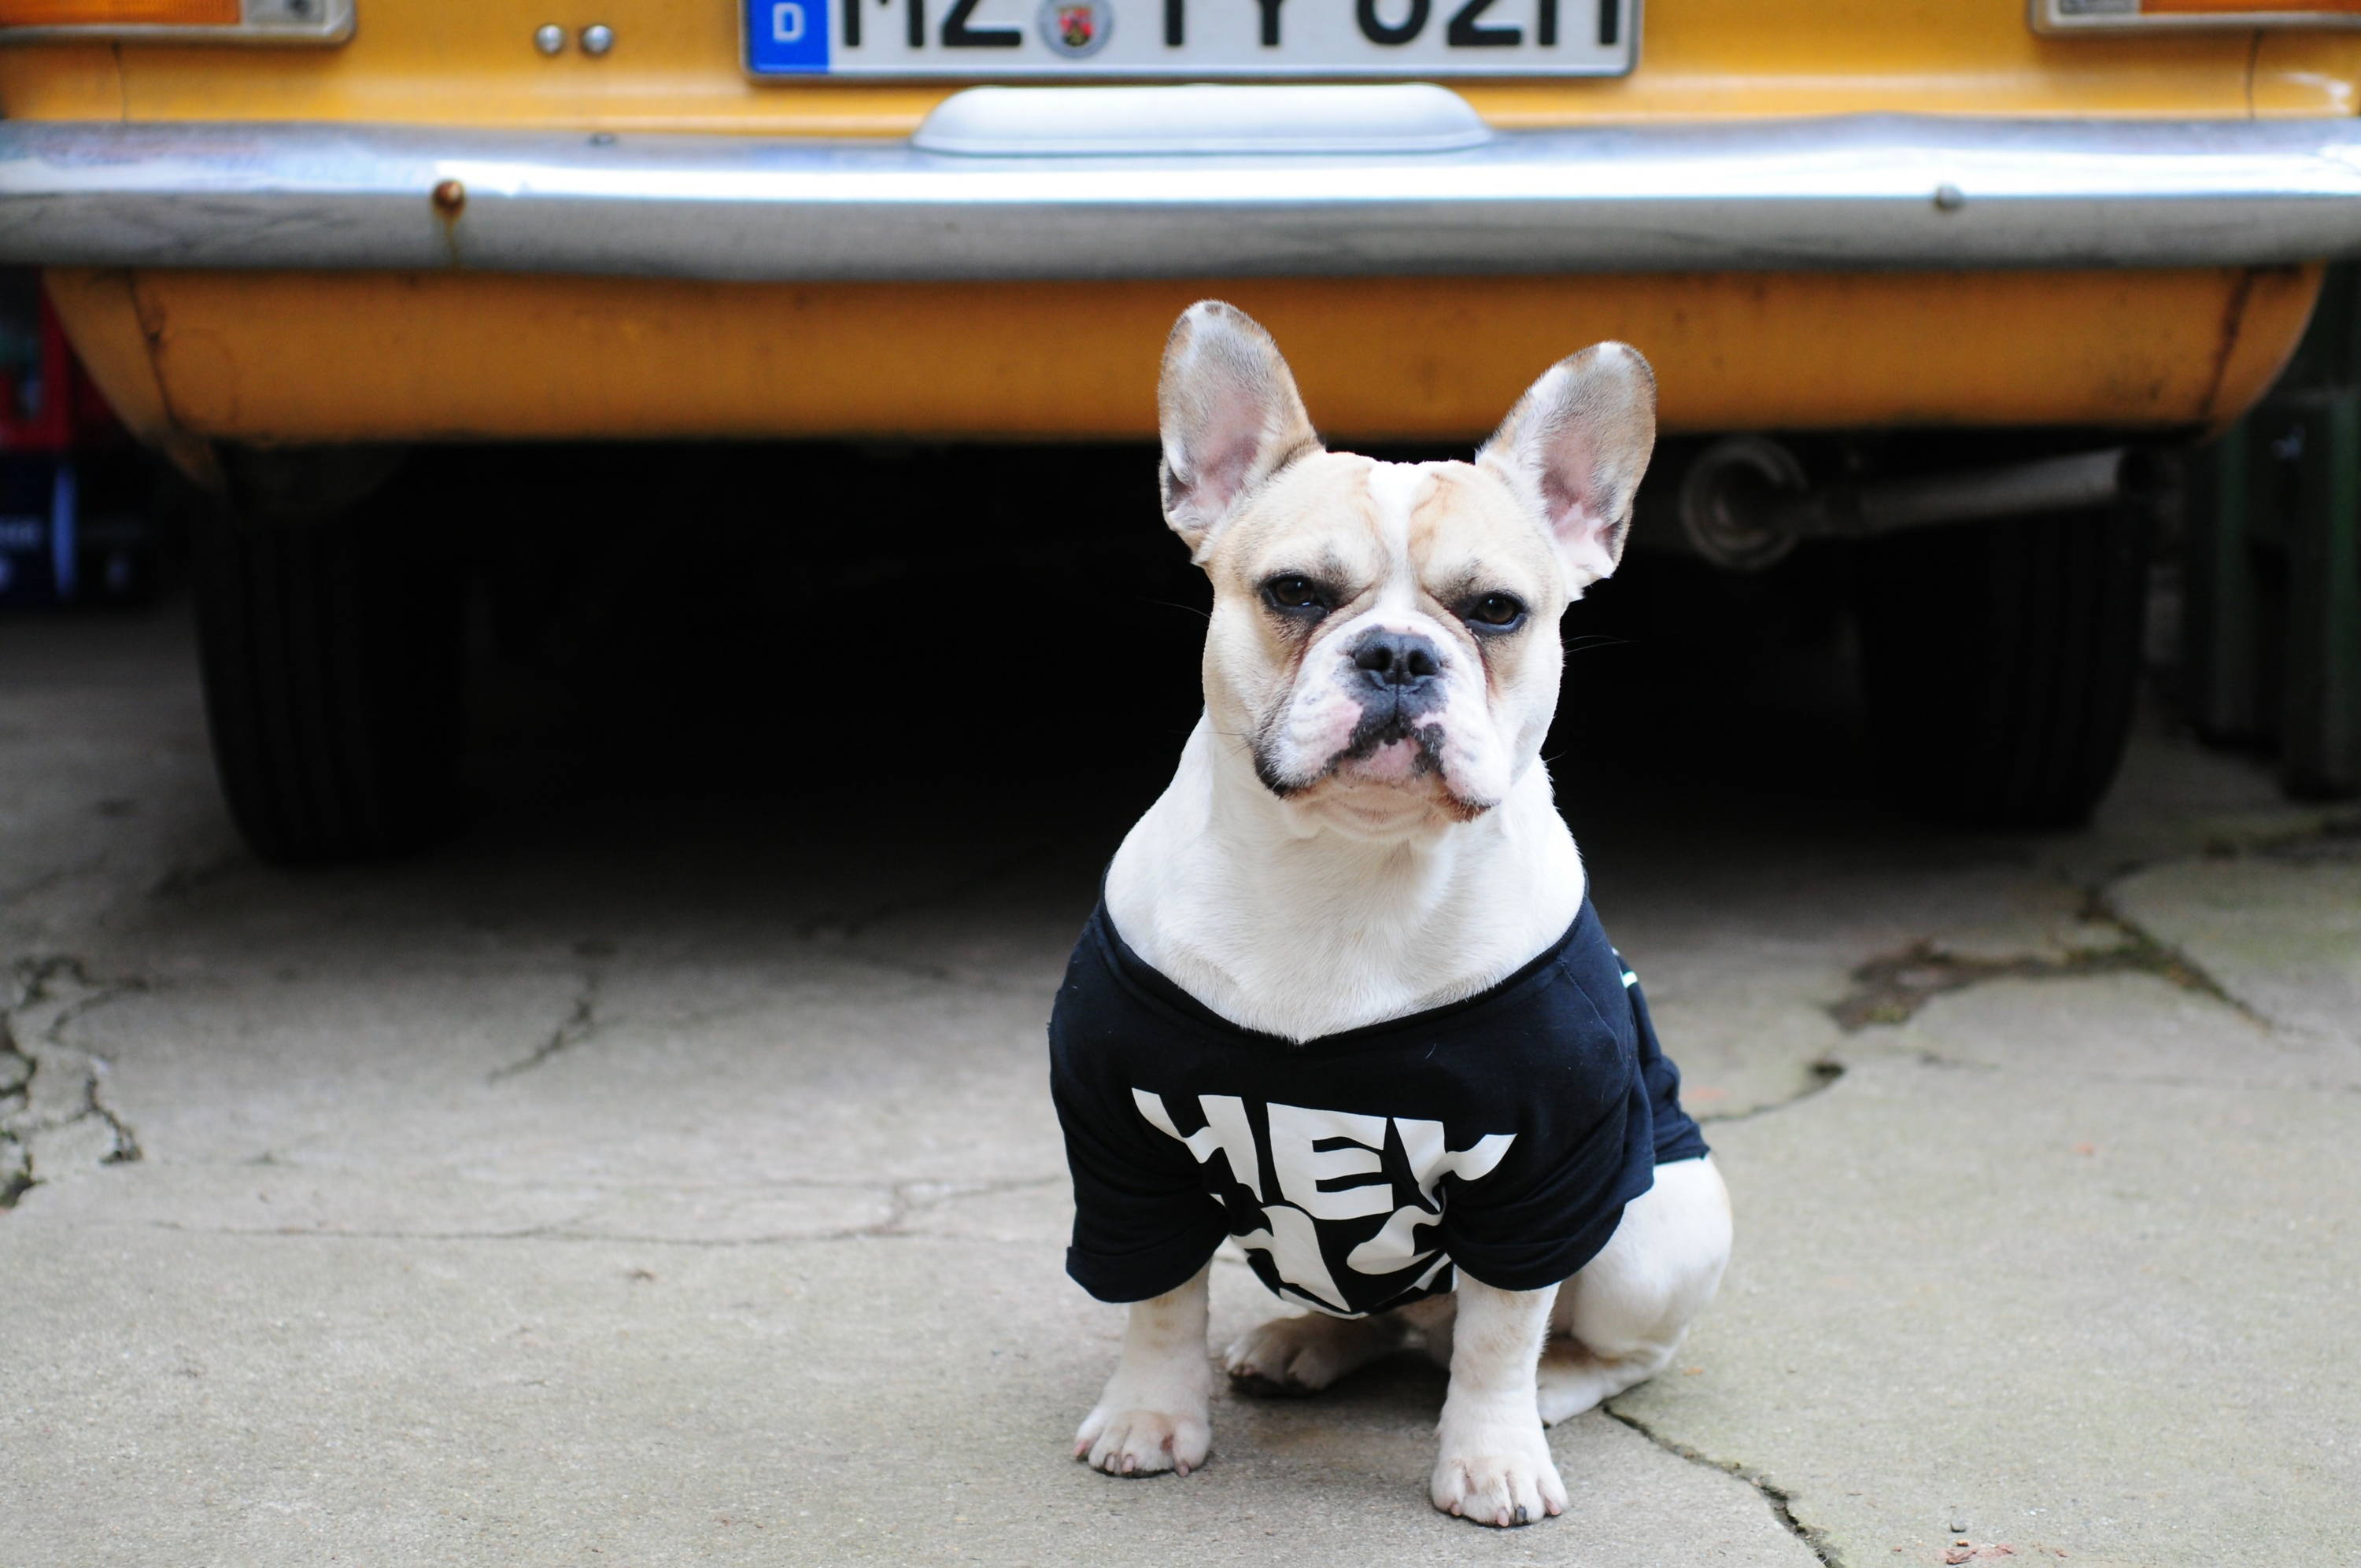 A French Bulldog wearing a t-shirt. Photo by Brina Blum